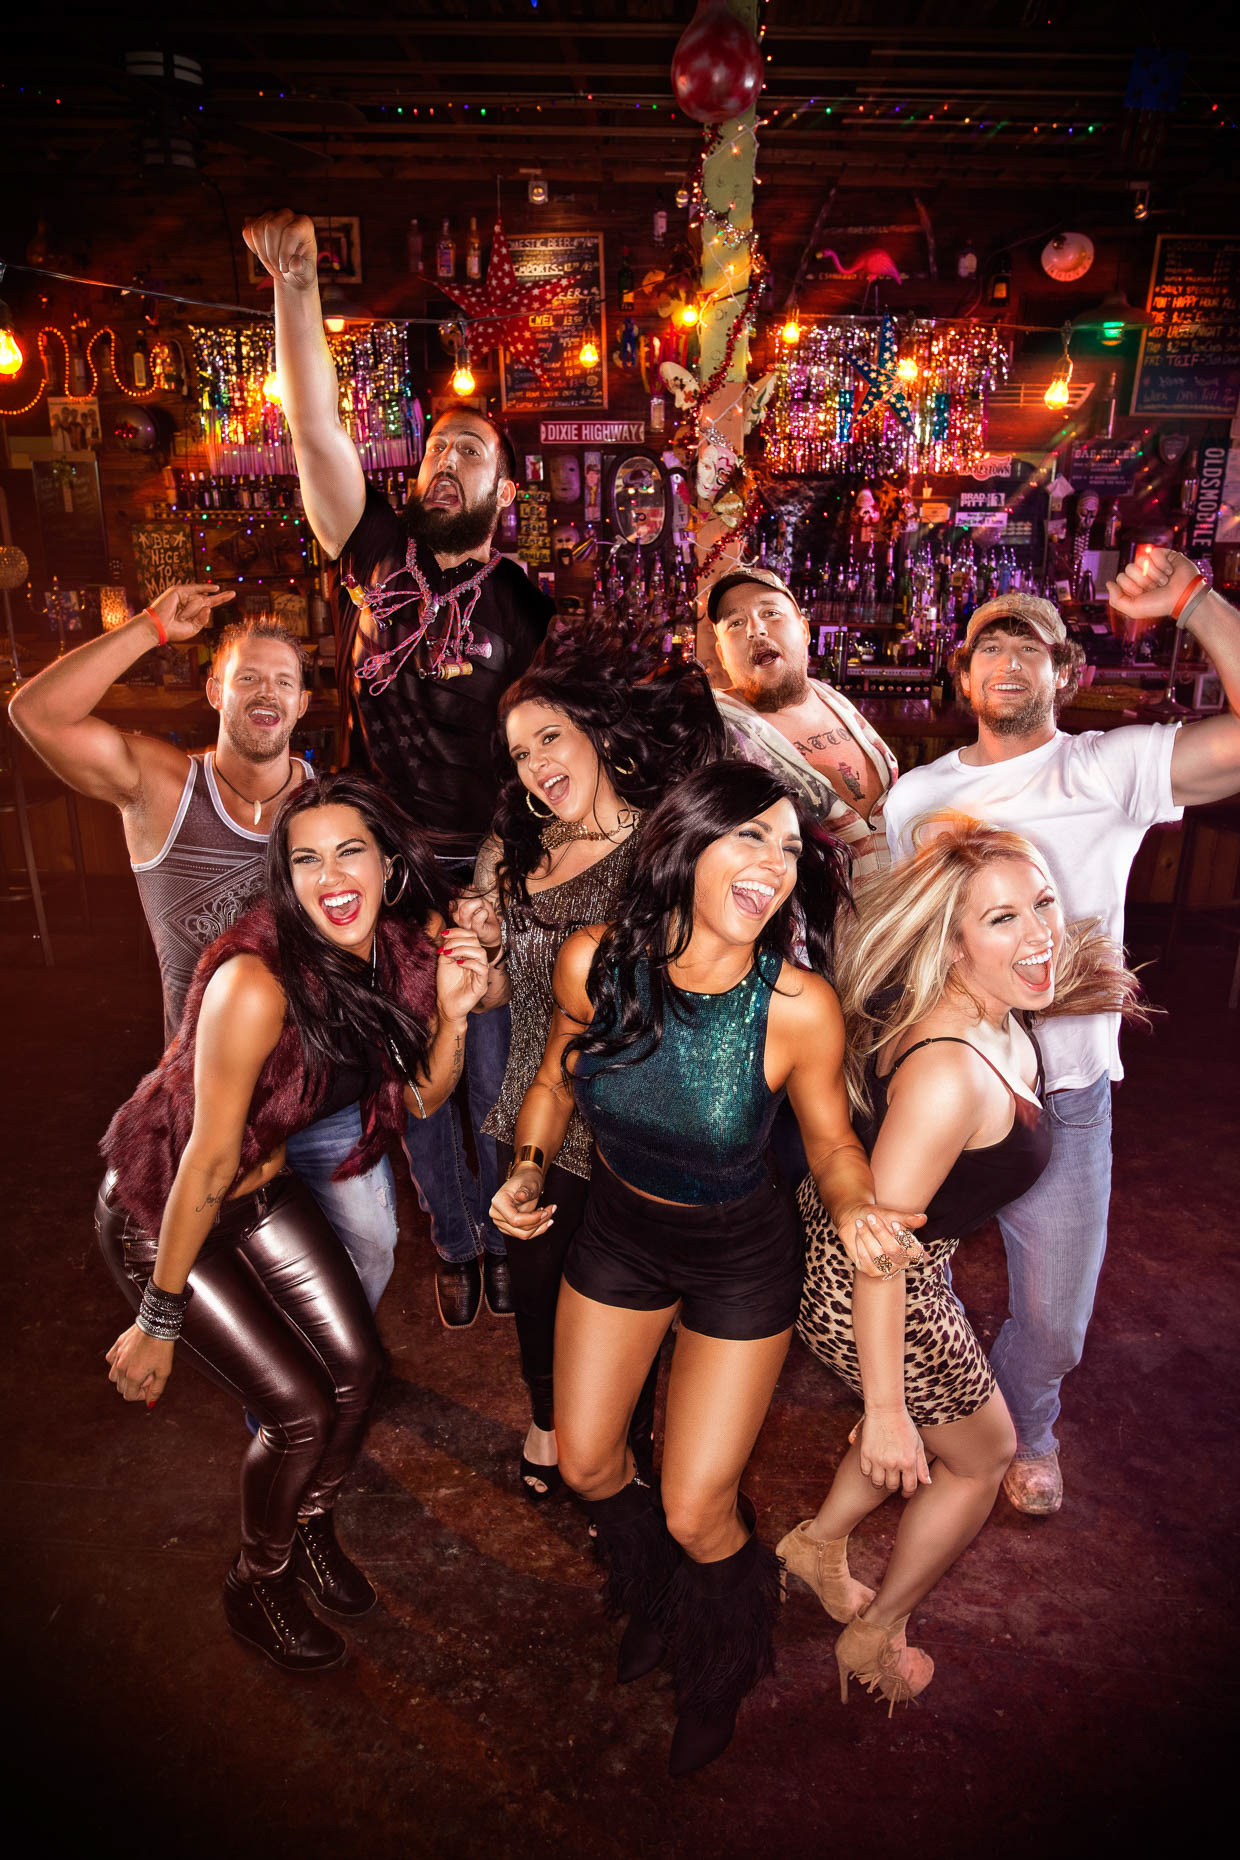 Poster art cast photo for reality TV show Party Down South, featuring Ryan Daddy Richards, Walt Windham, Josh Murray, Lyle Boudreaux,  Mattie Breax, Hannah Hott Dogg Guidry, Lauren White, and Tiffany Heinen for CMT. The cast is partying at a bar in New Orleans. Promo art gallery shoot by Andy Batt